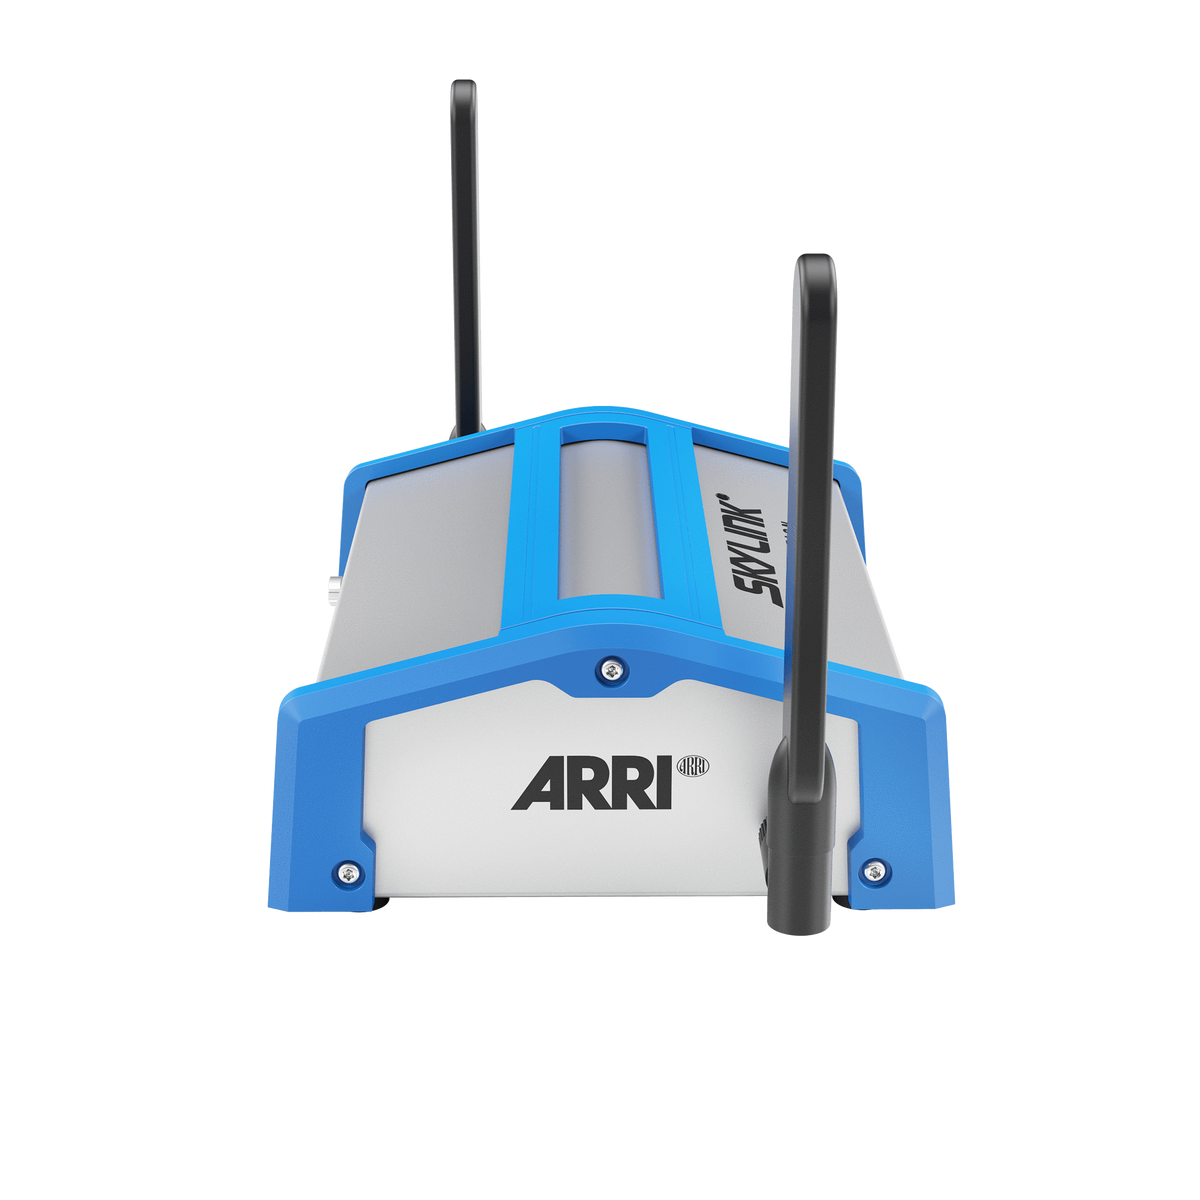 ARRI SkyPanel SkyLink Wireless DMX Base Station